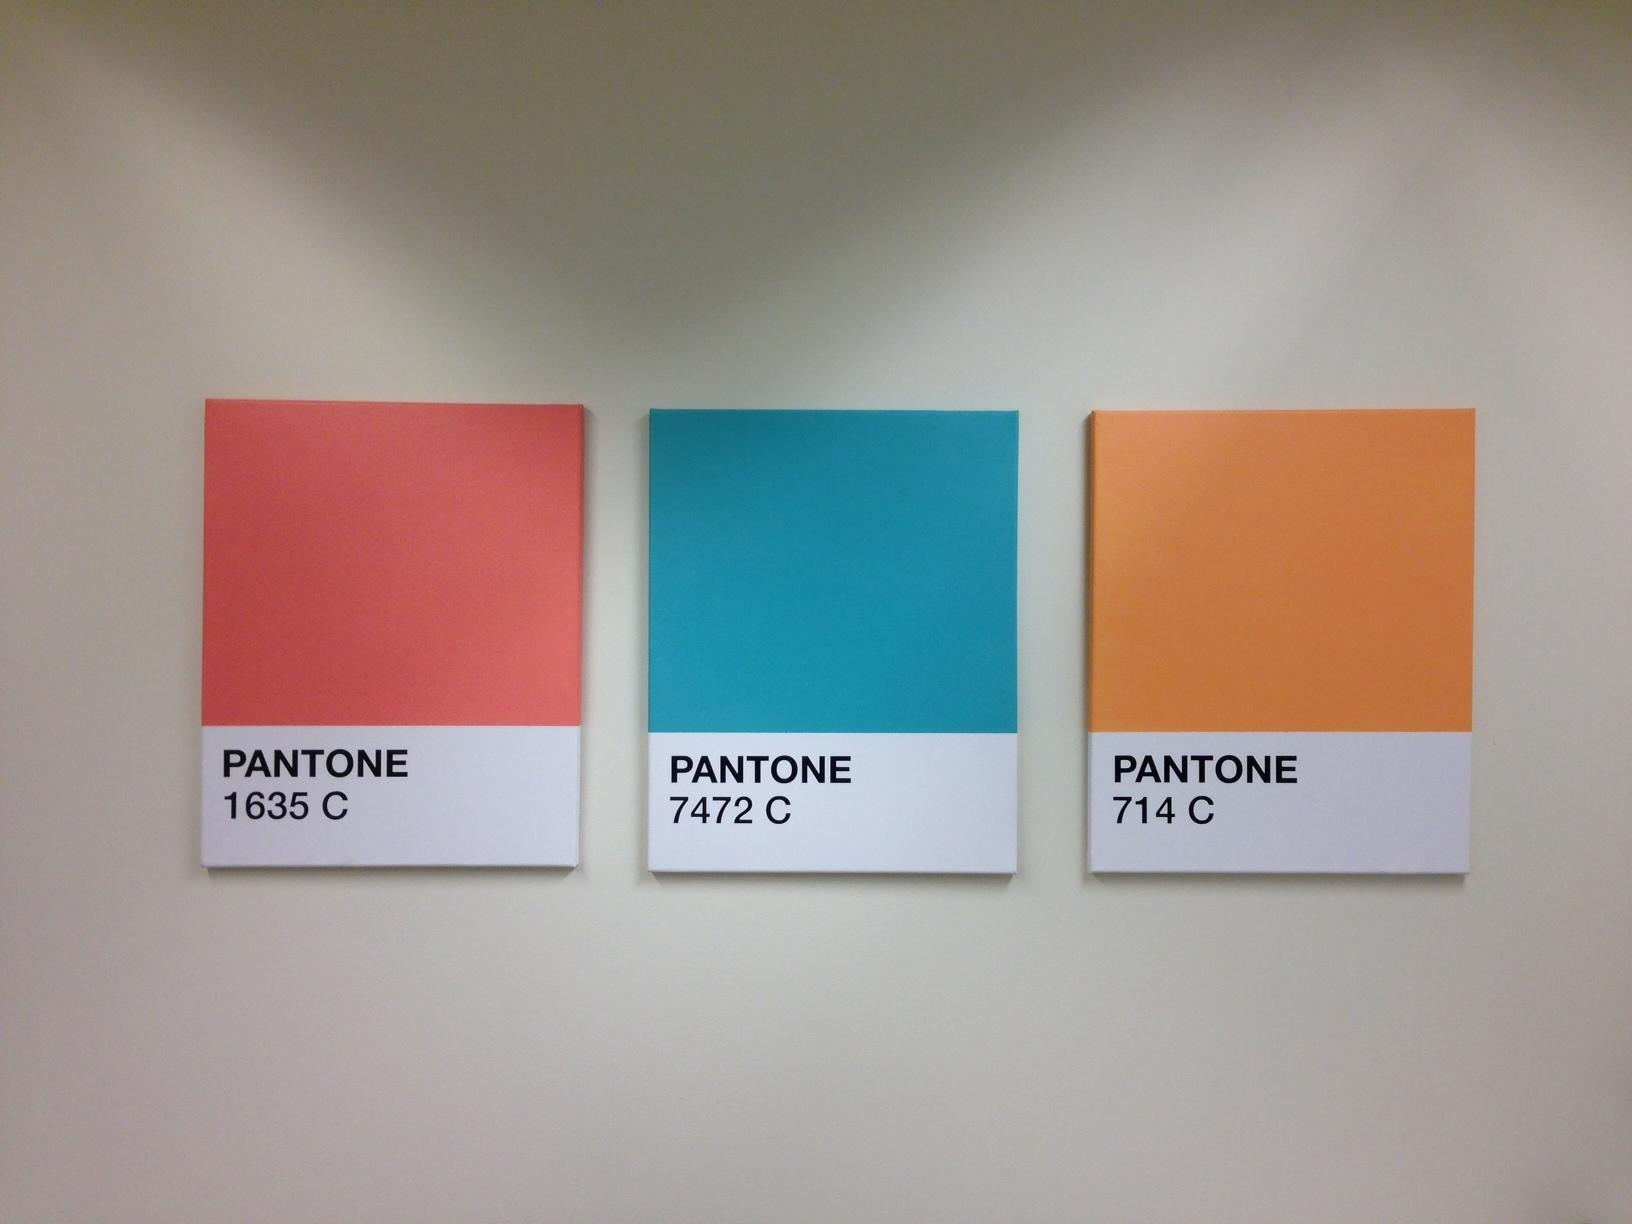 Pantone Canvas Wall Art Color Swatches | The Rodimels Family Blog Throughout Paint Swatch Wall Art (Image 18 of 20)